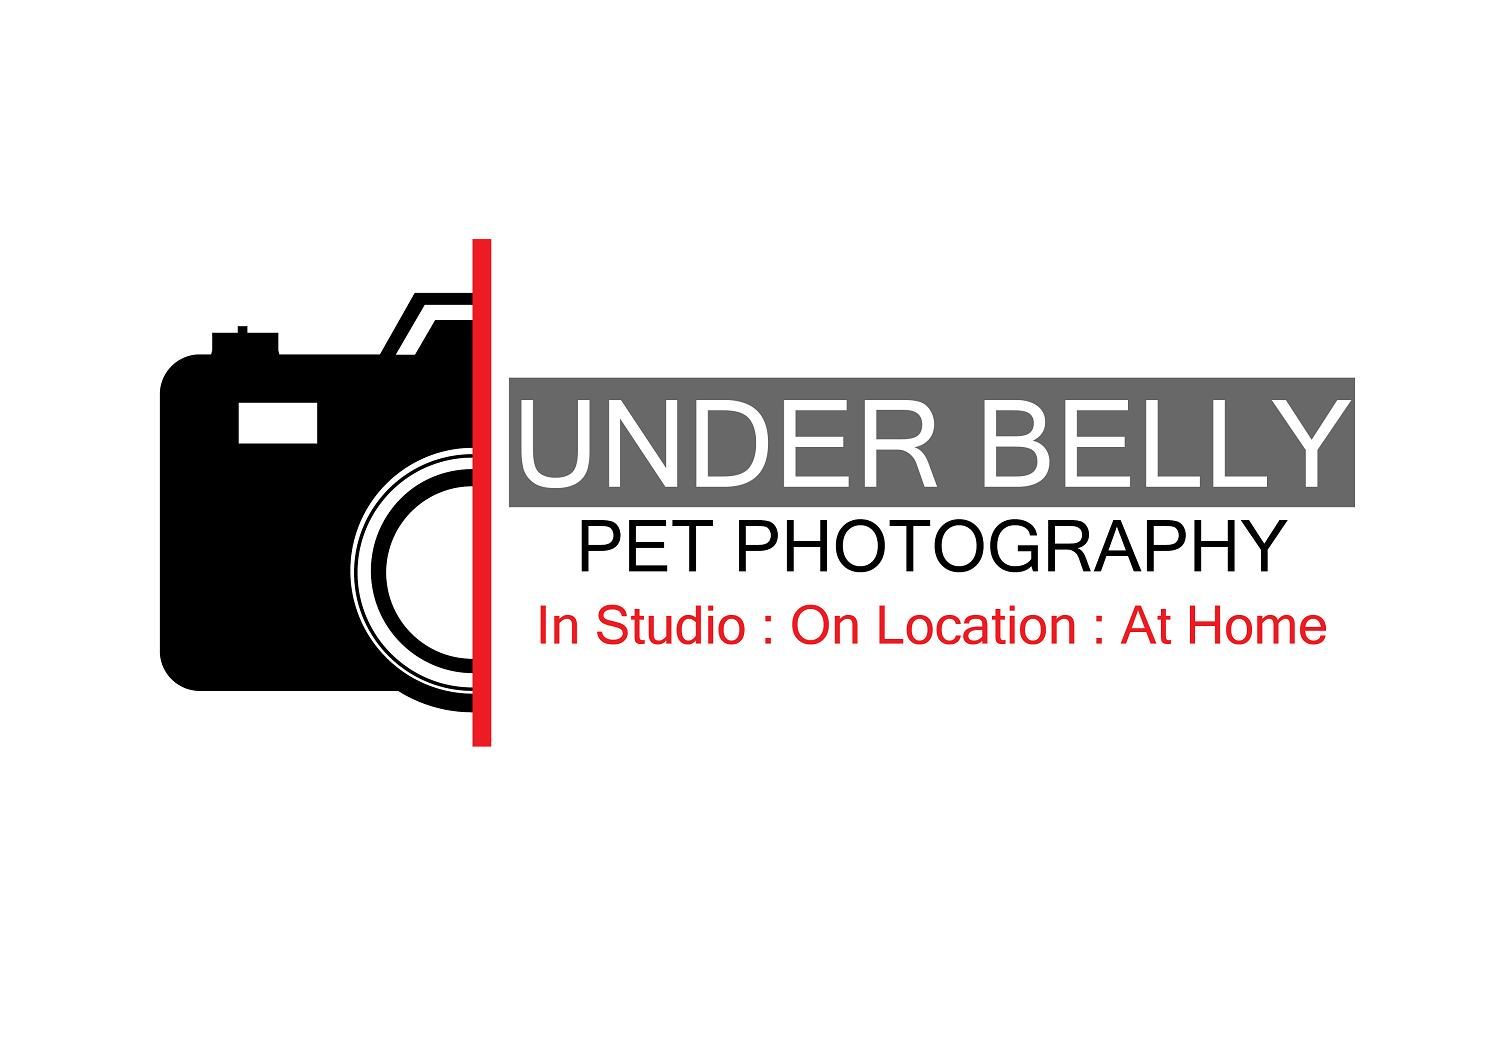 Elegant Serious Photographer Logo Design For Under Belly Pet Photography In Studio On Location At Home By Kusuma1922 Design 19853730